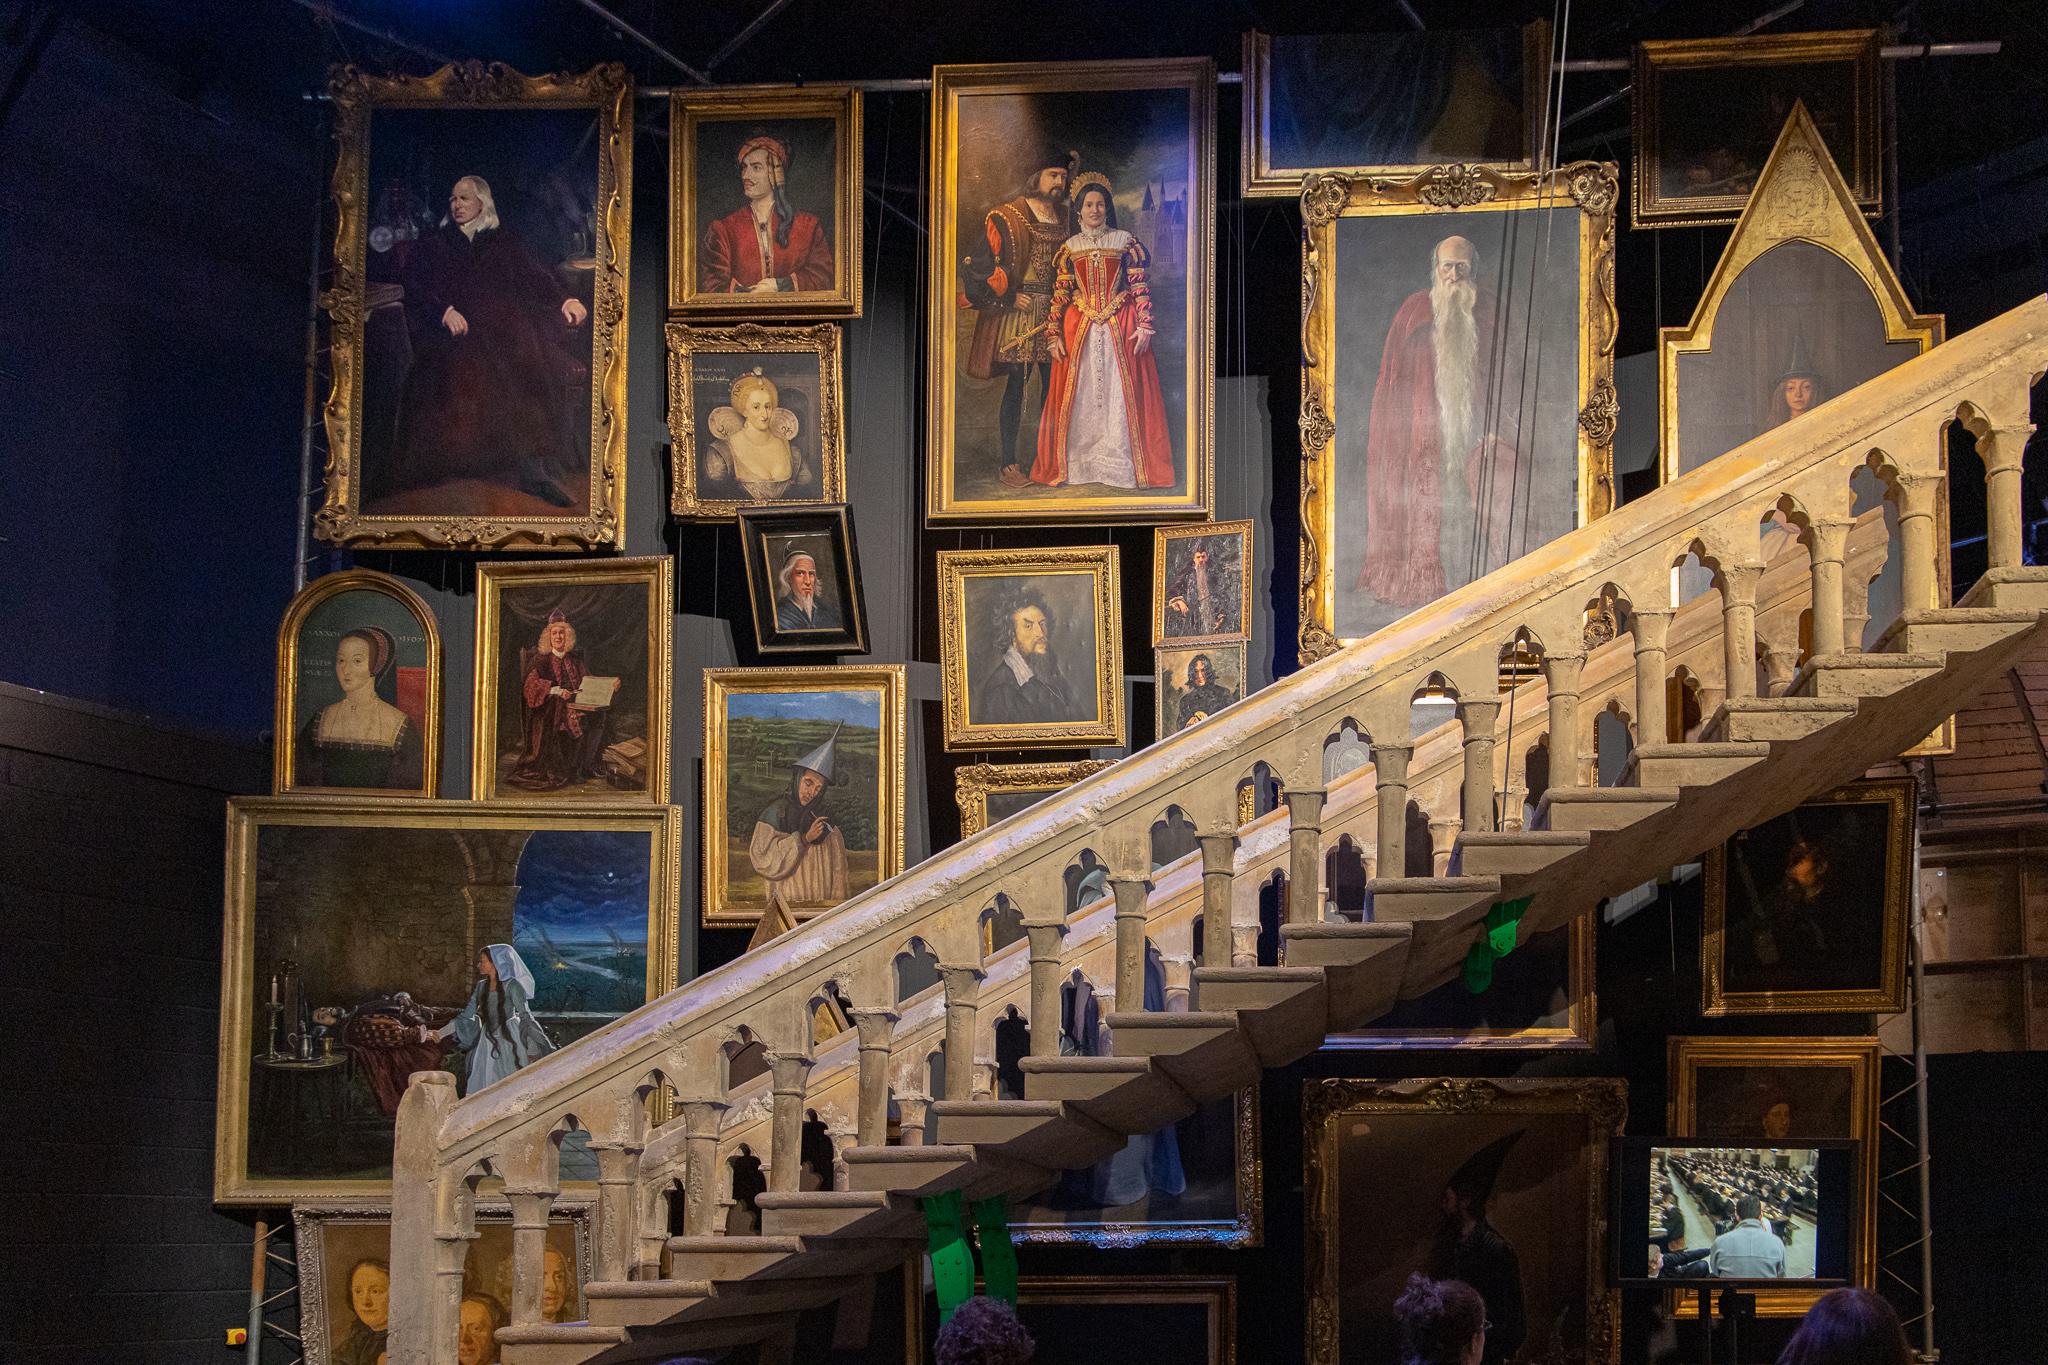 Moving staircase and portraits at Hogwarts